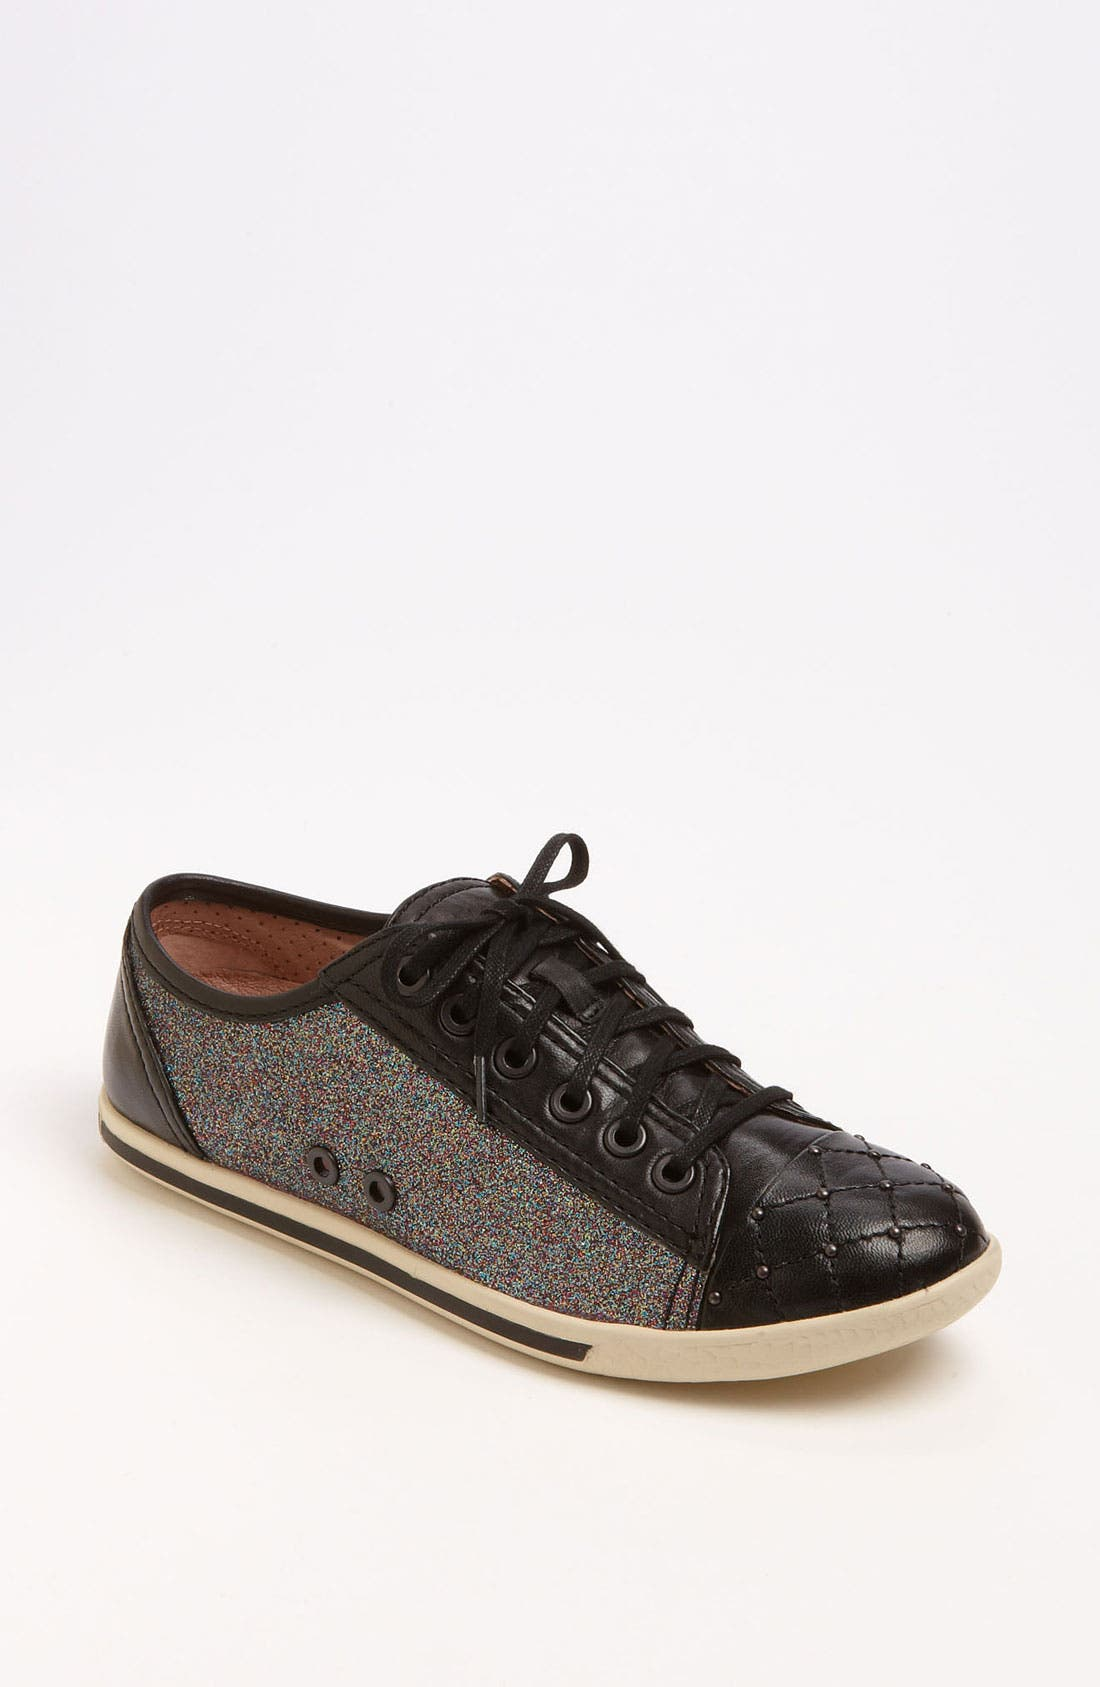 Main Image - Vince Camuto 'Willow' Sneaker